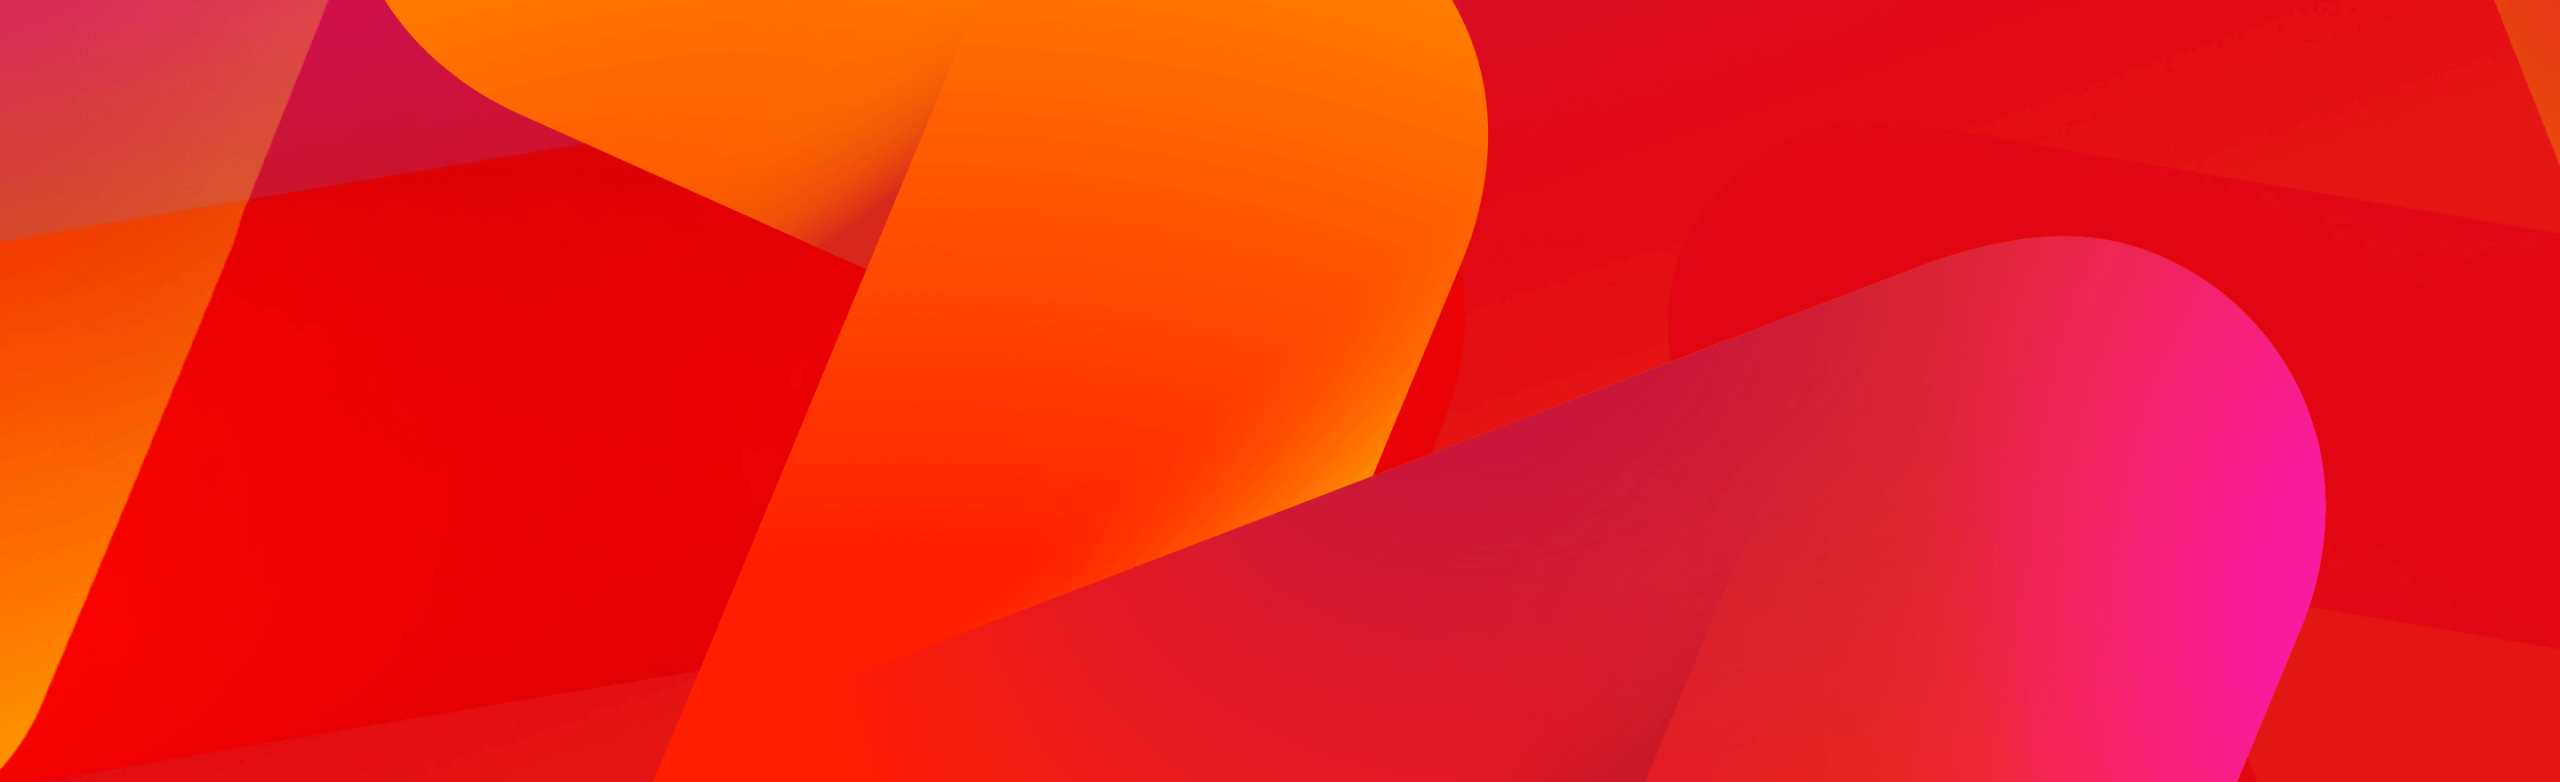 Freeview red and orange background